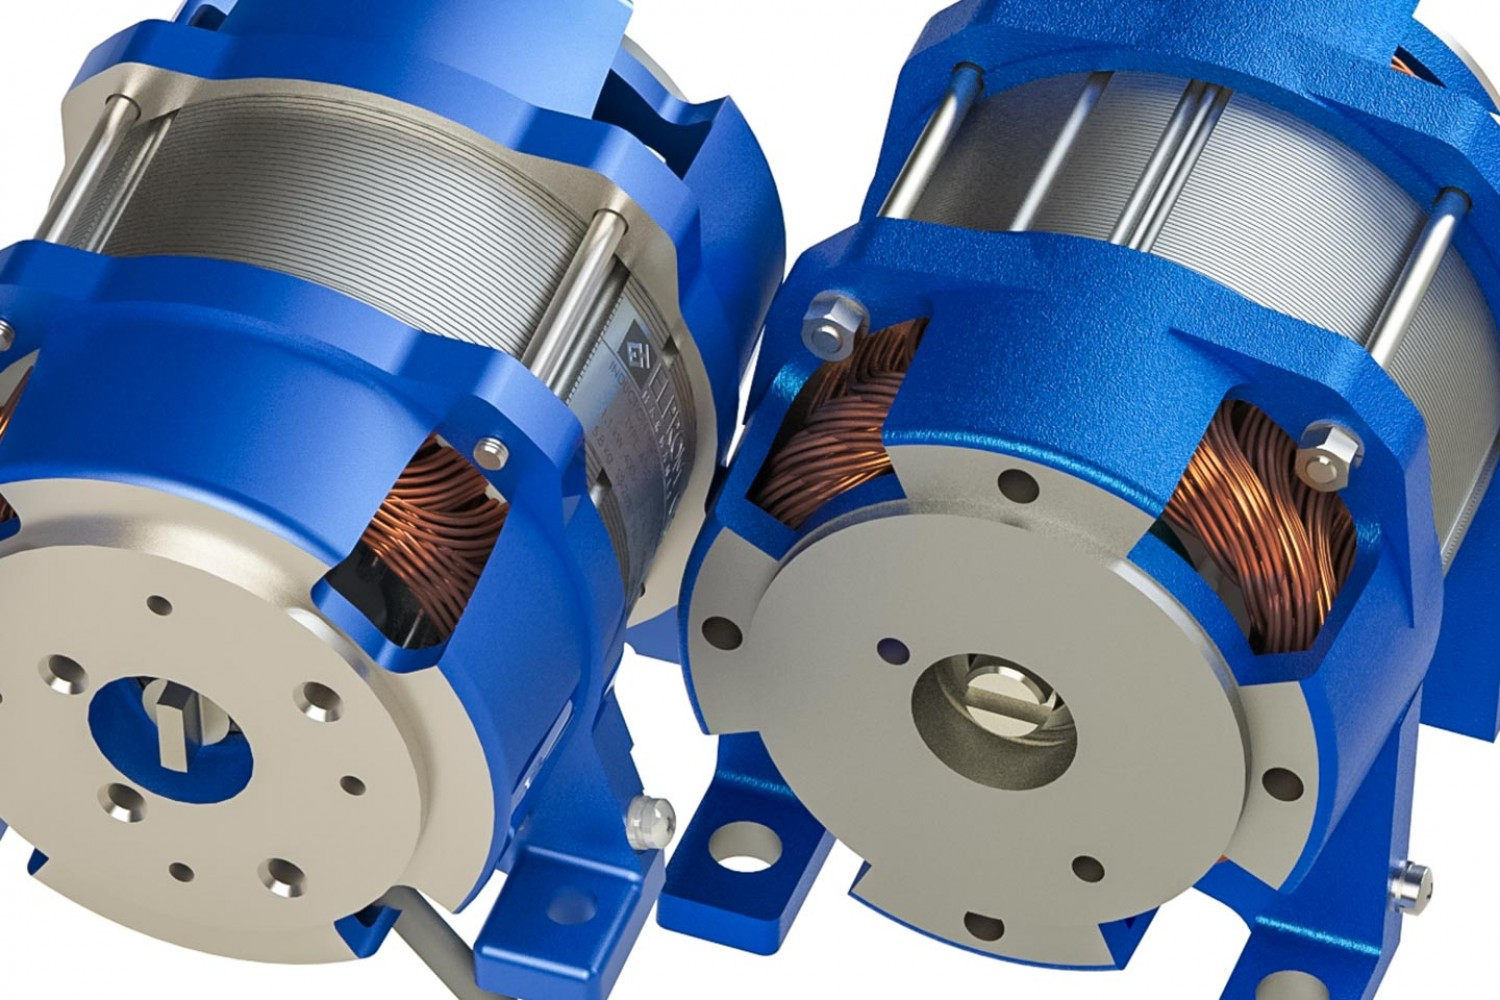 Submersible motors for hydraulic pumps